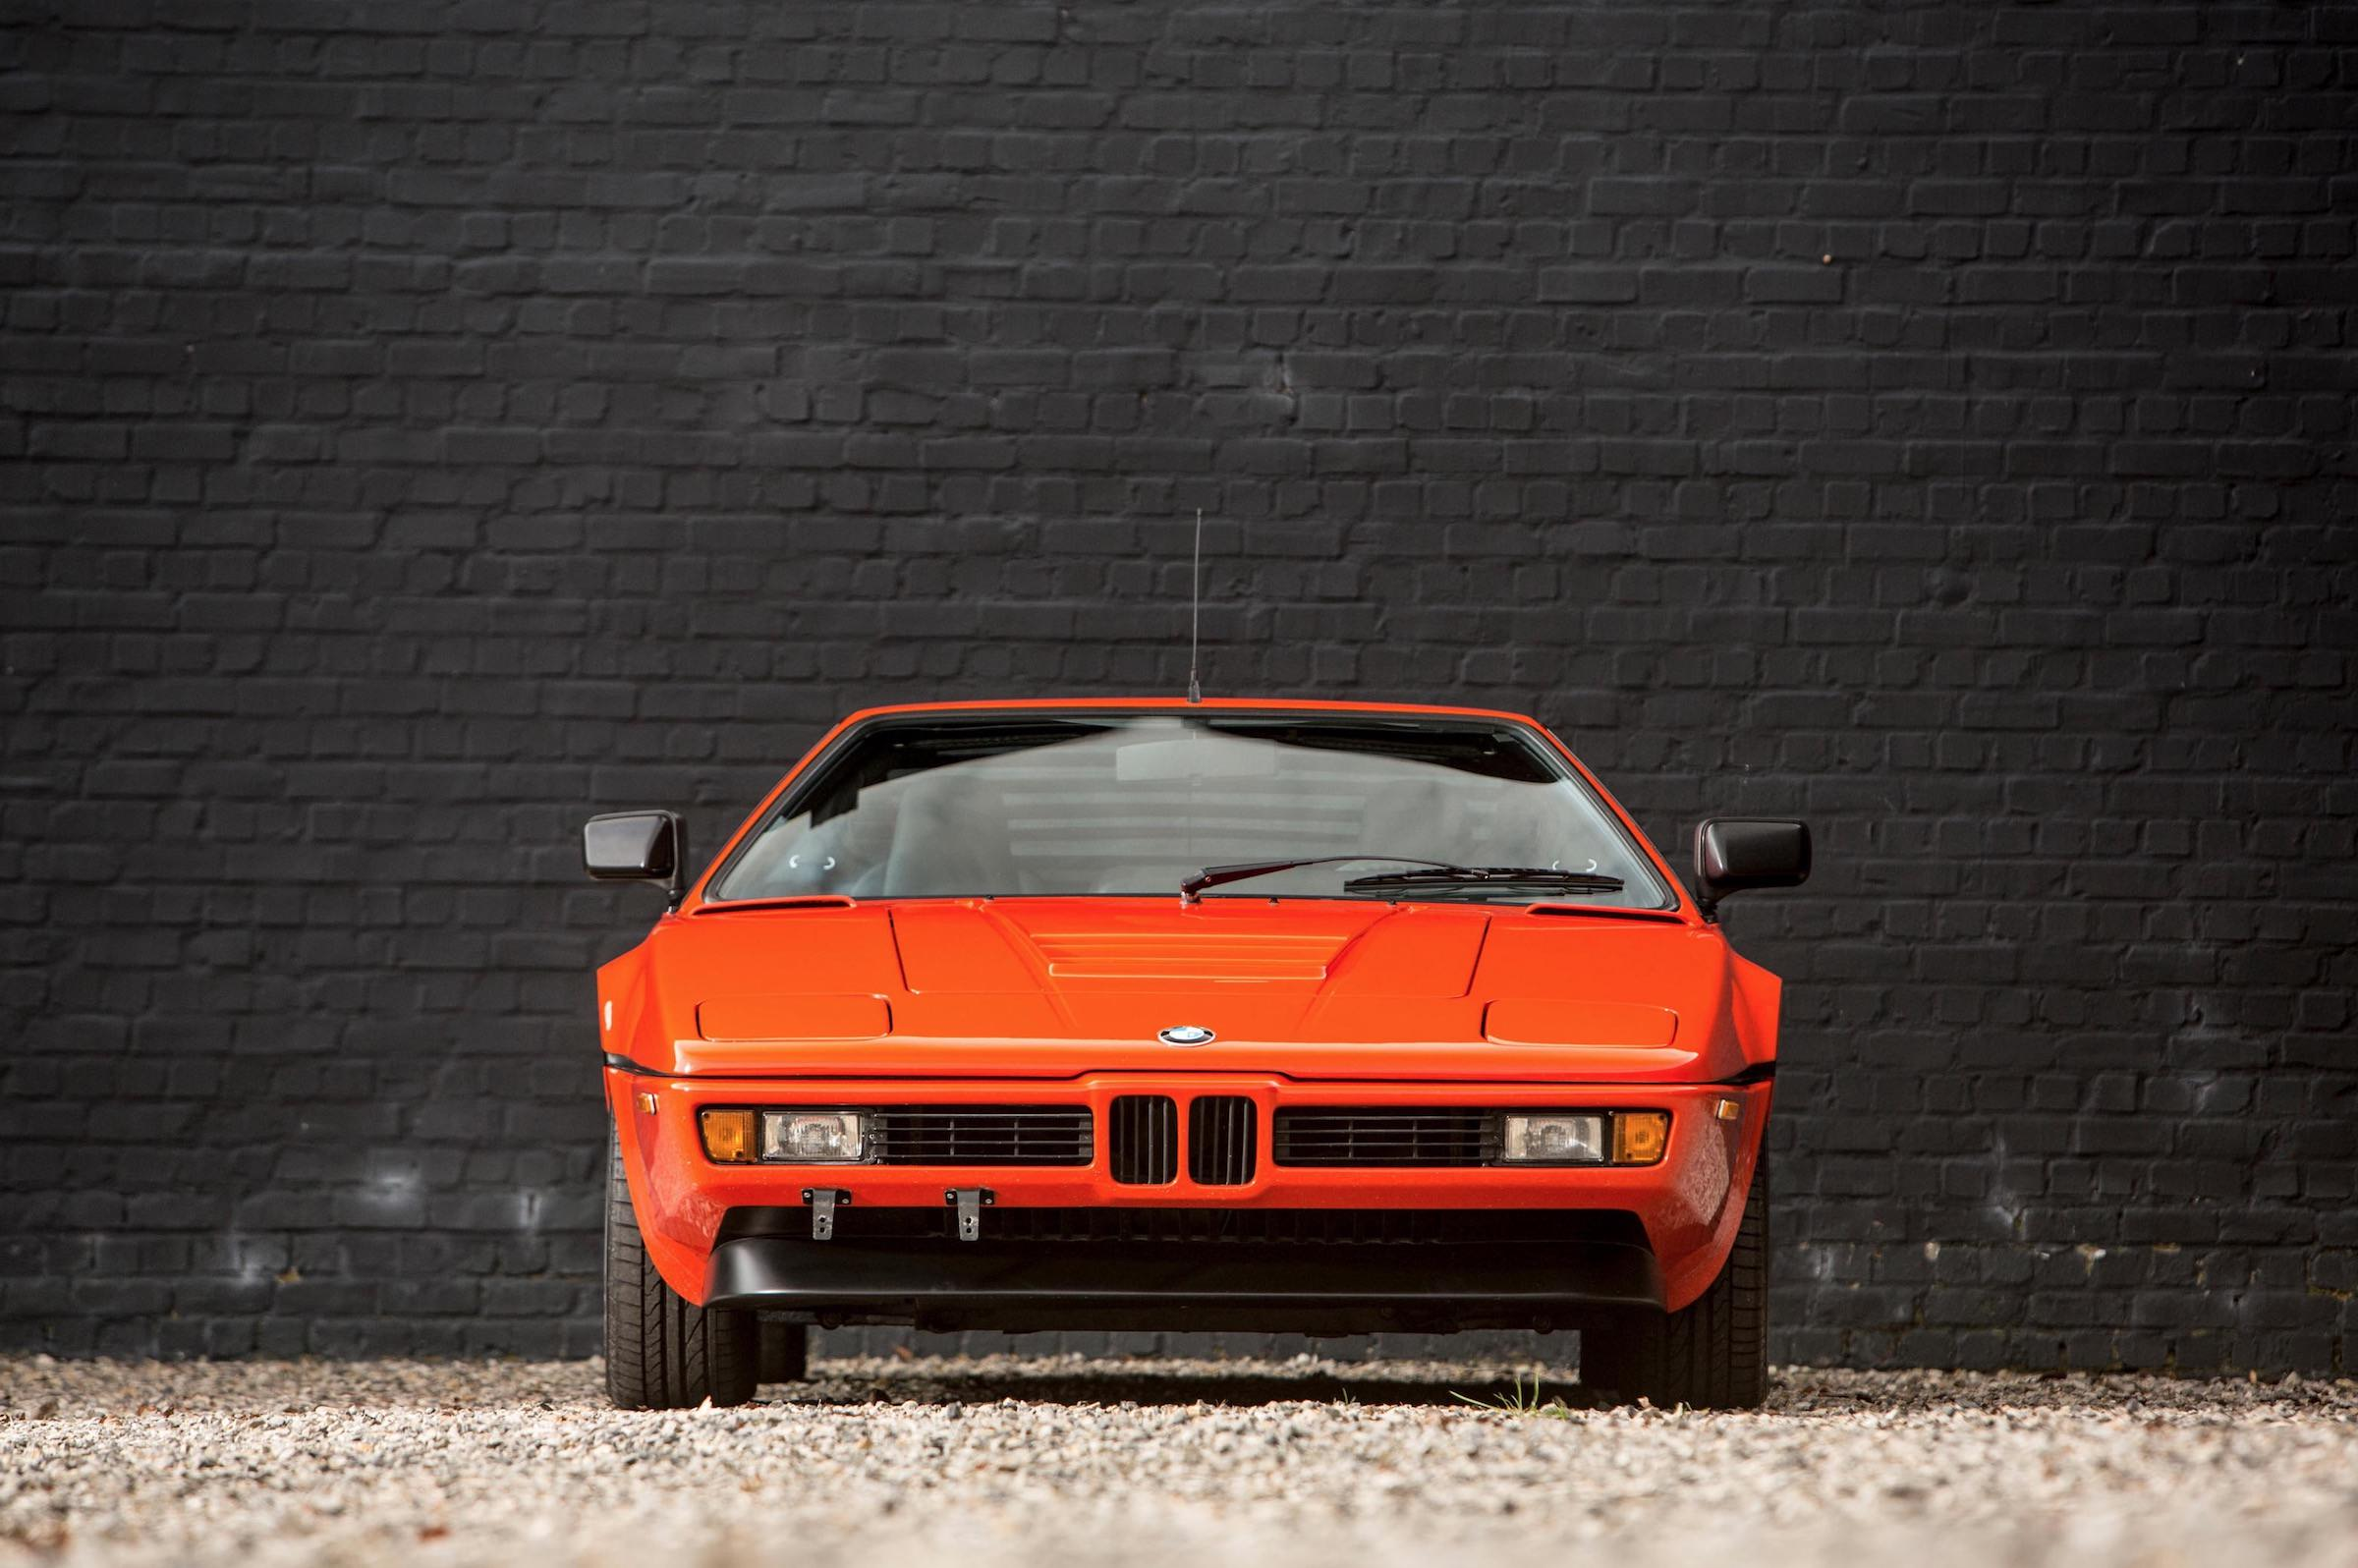 The First Mid Engined Bmw Supercar The Bmw M1